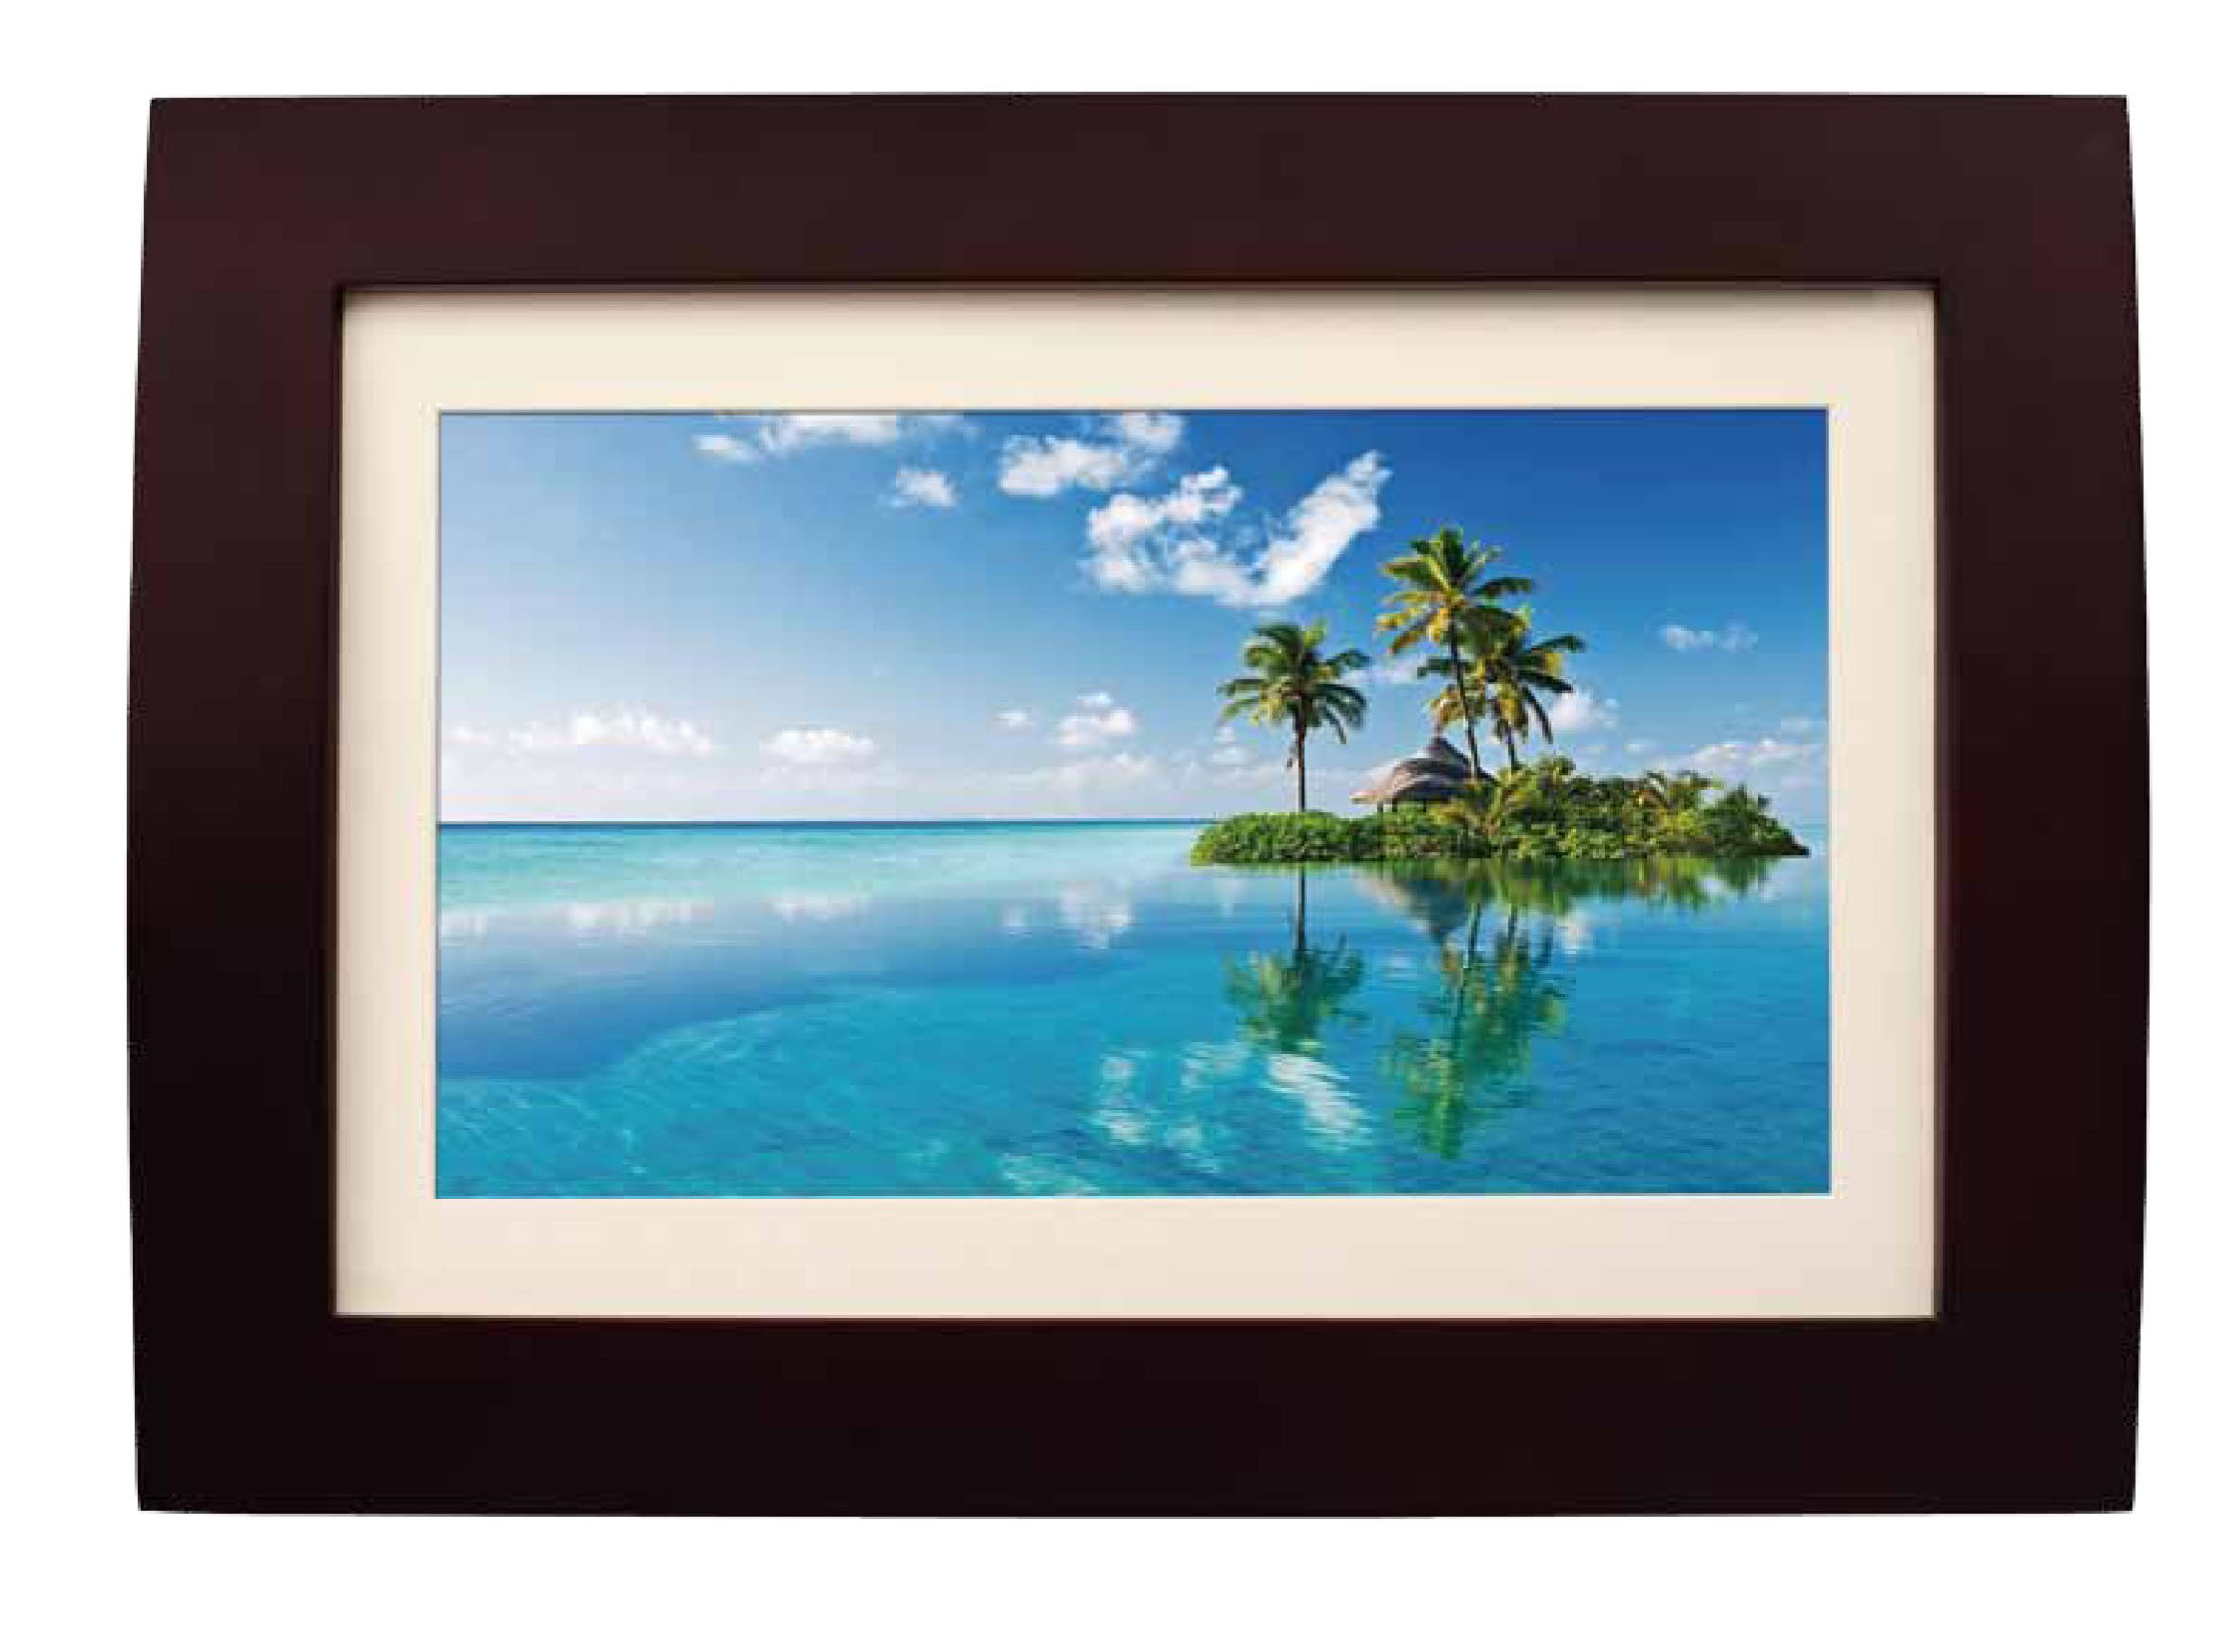 Sylvania SDPF1089 10-Inch LED Multimedia Wood Finished Digital Photo Frame with Remote Control and 2 GB Built in Memory (Brown) by Sylvania